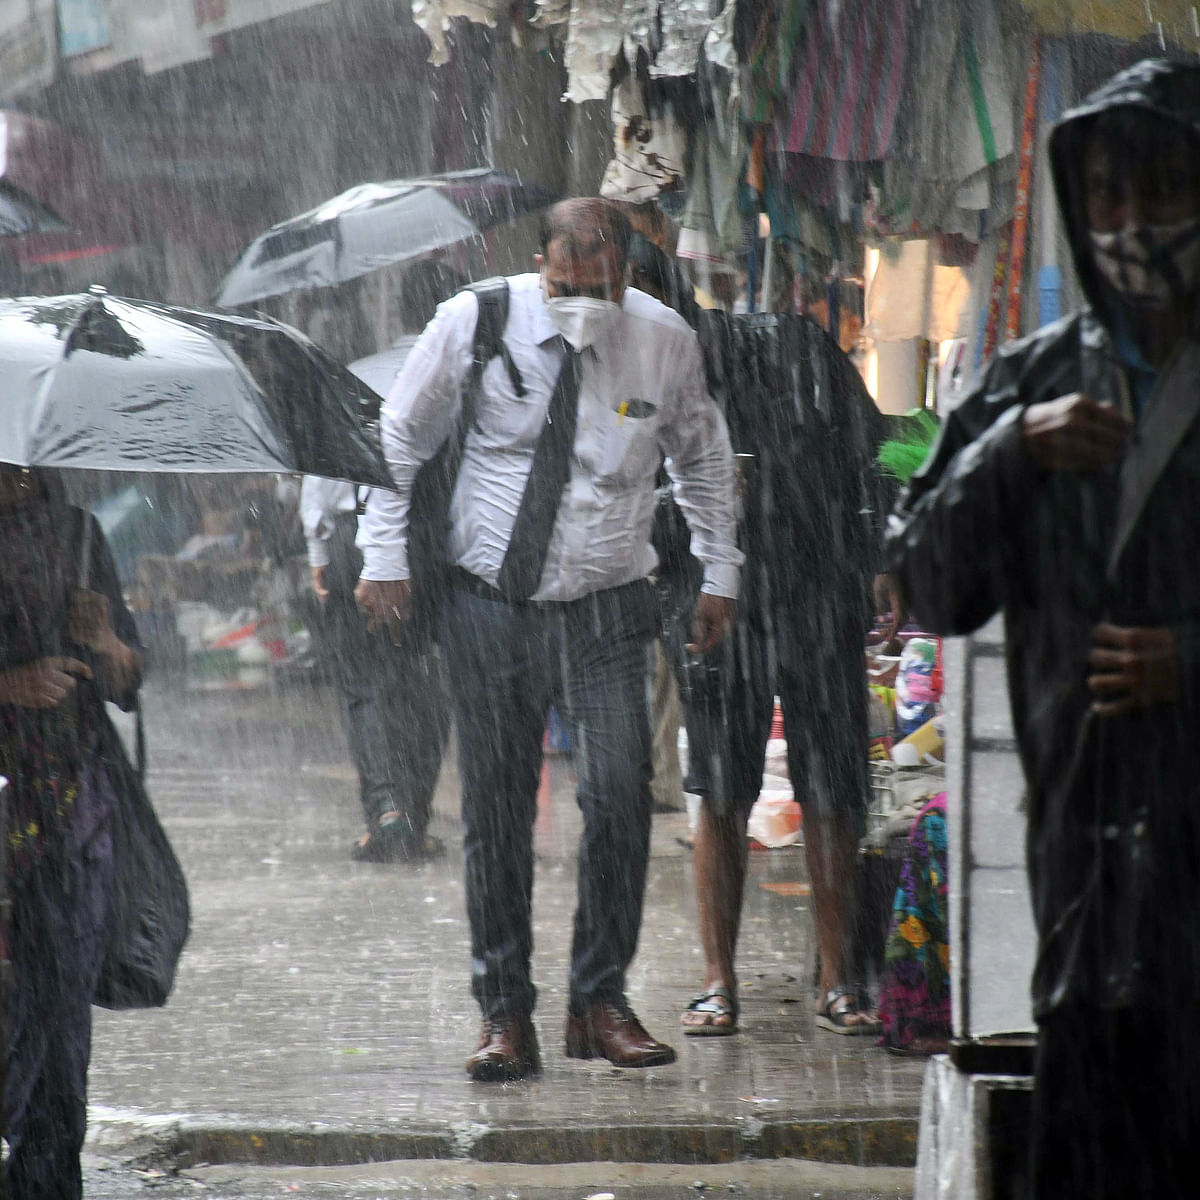 Mumbai weather update: IMD predicts moderate rainfall with possibility of heavy spells at isolated places